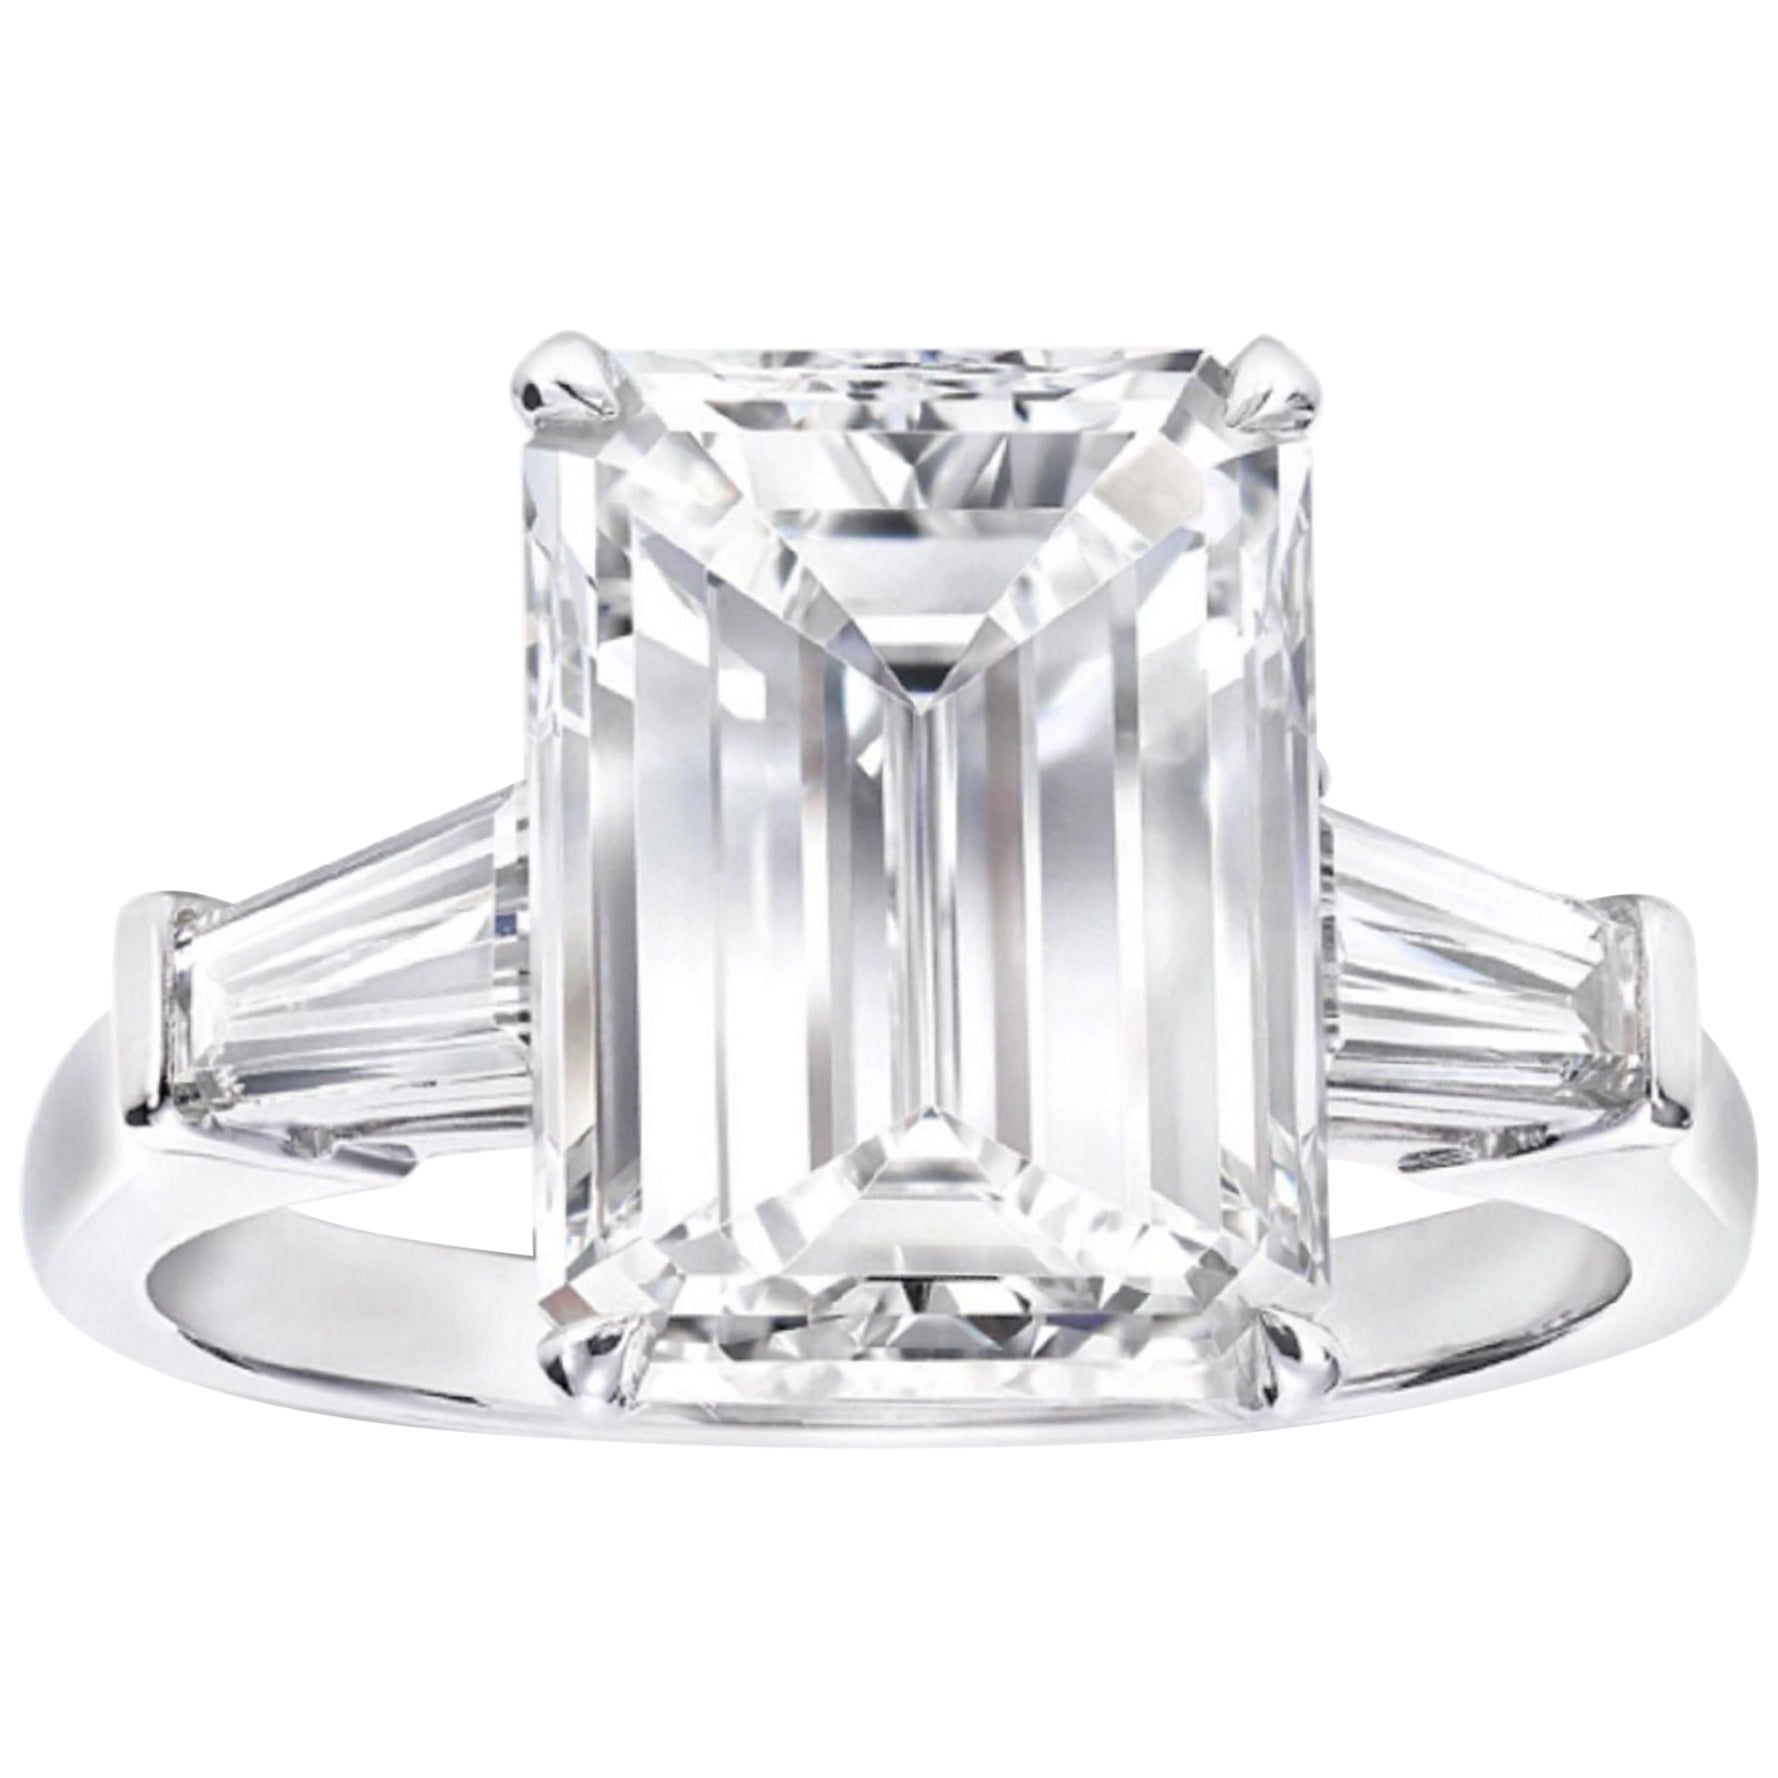 GIA Certified 4.50 Carat Emerald Cut Diamond Ring E Color VS2 Clarity